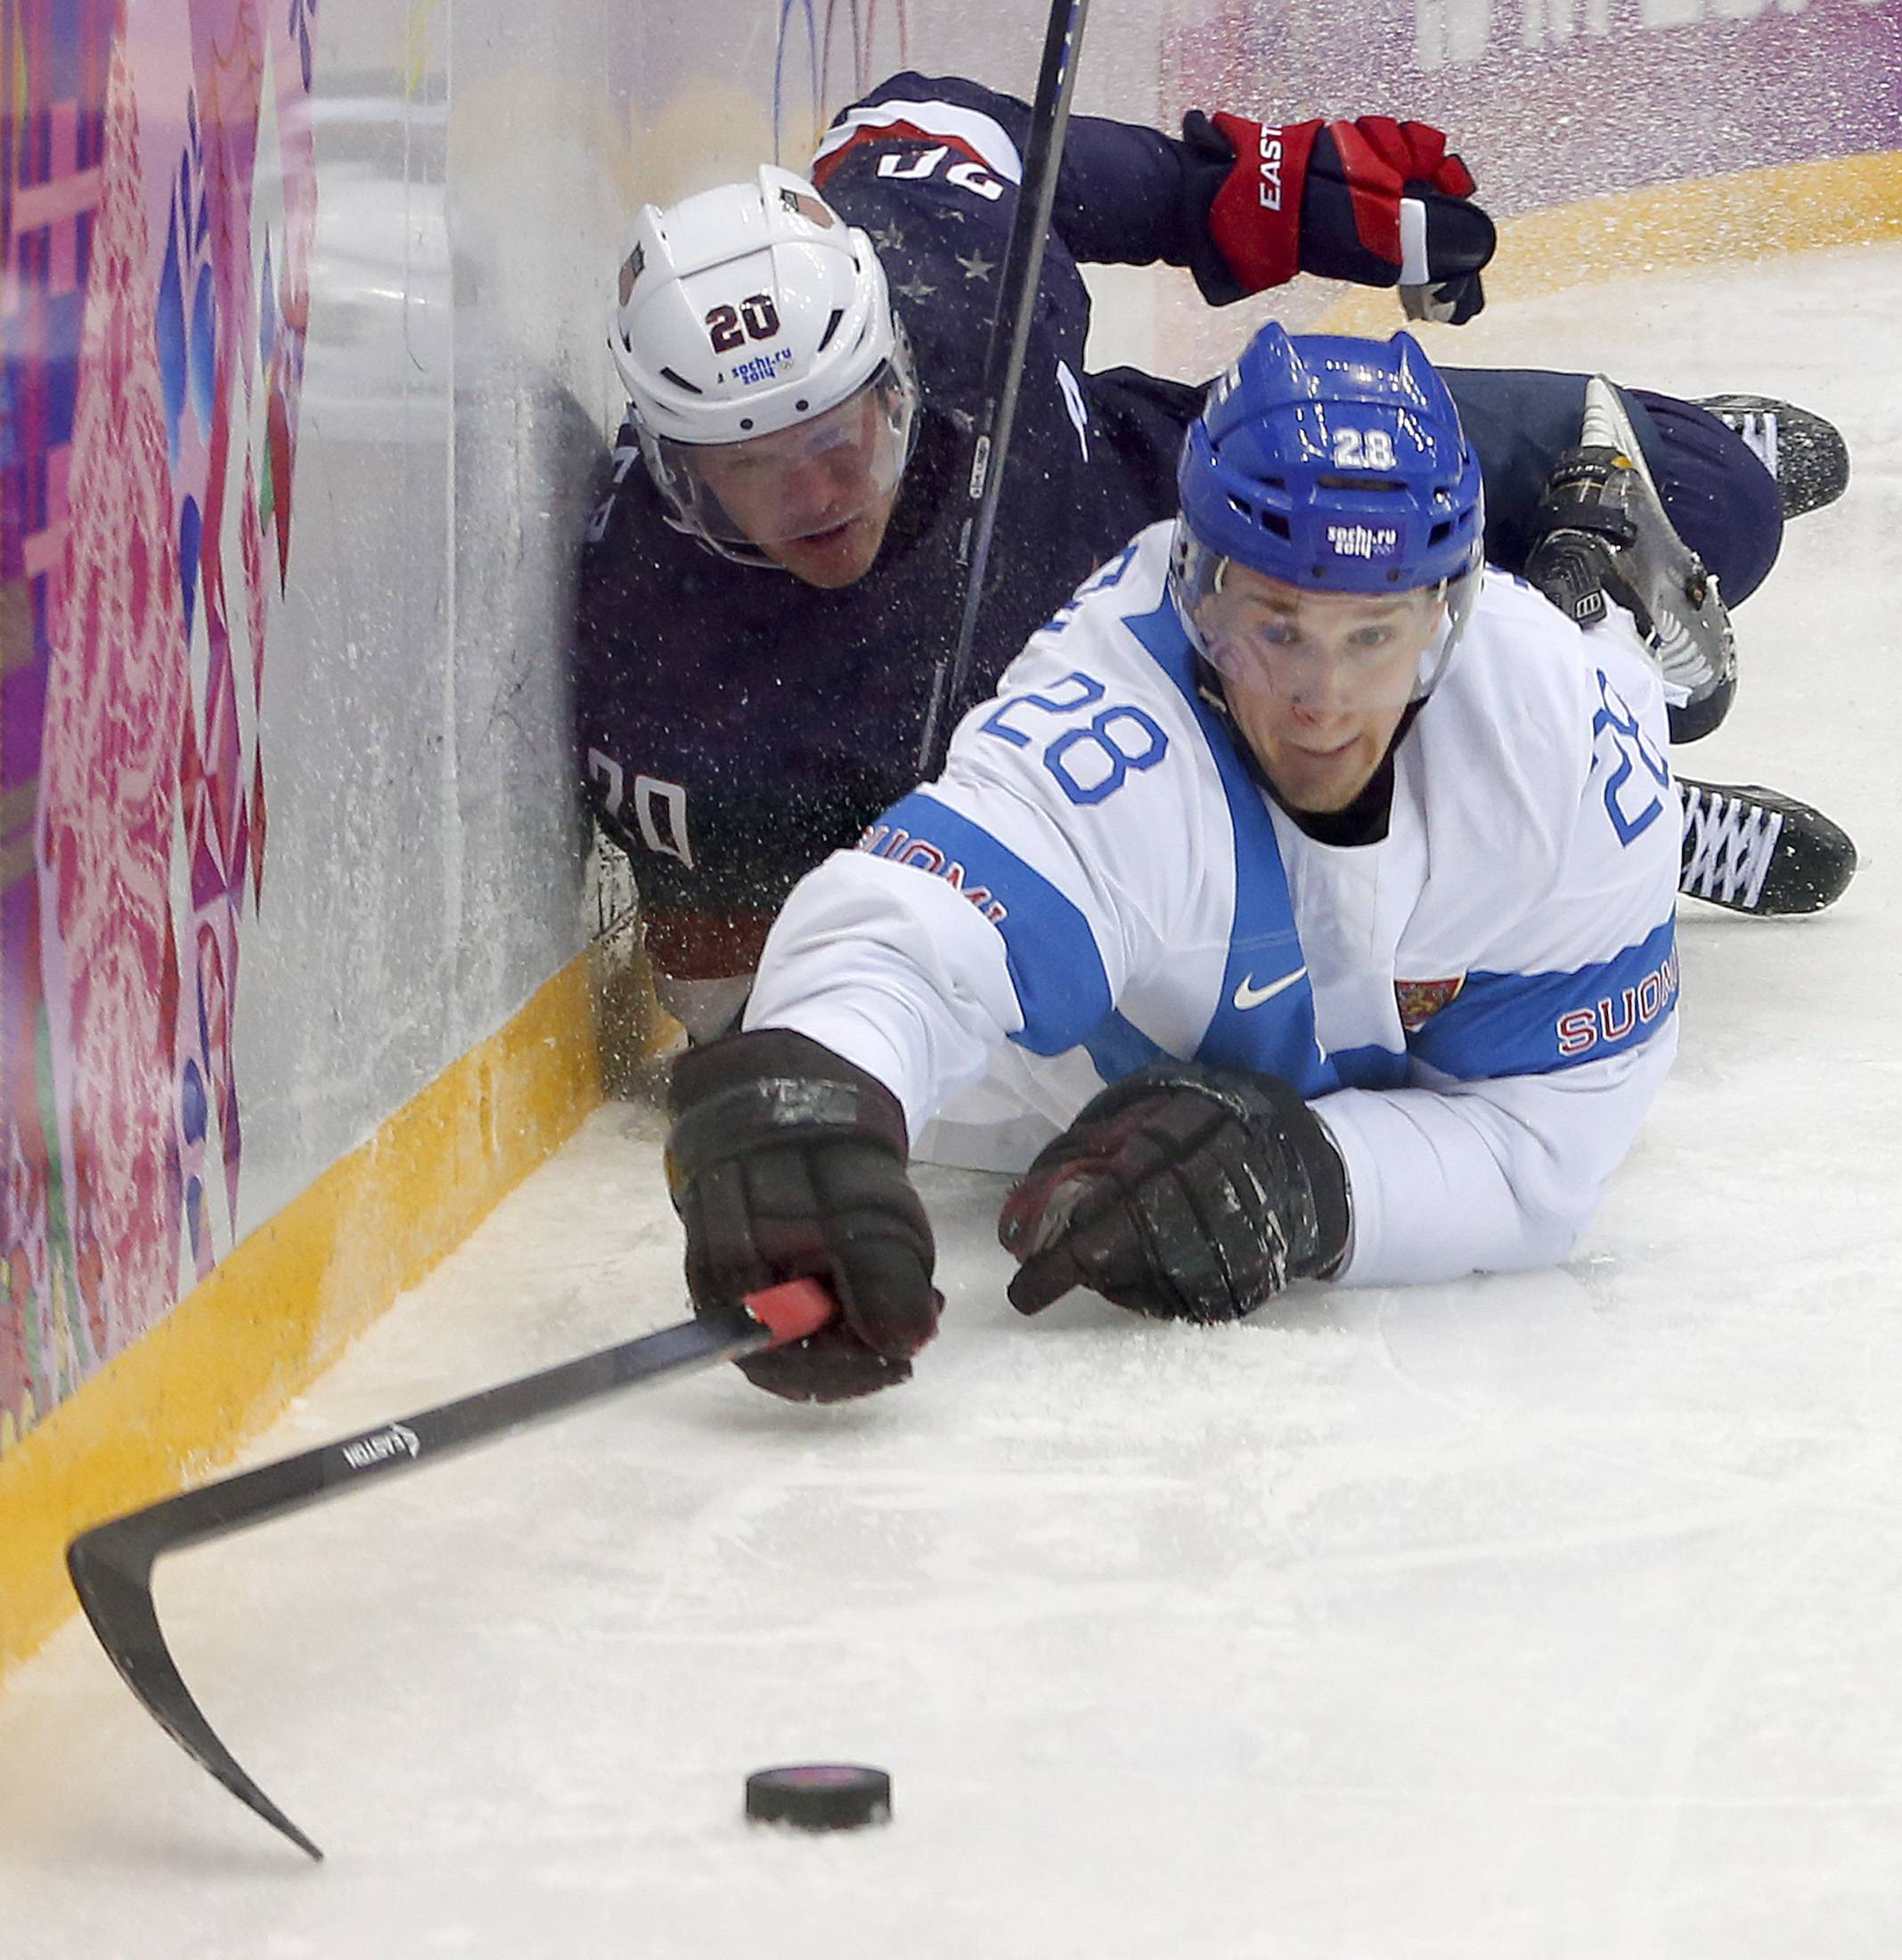 USA forward Blake Wheeler and USA defenseman dive for the puck during the third period of the men's bronze medal ice hockey game at the 2014 Winter Olympics, Saturday, Feb. 22, 2014, in Sochi, Russia.